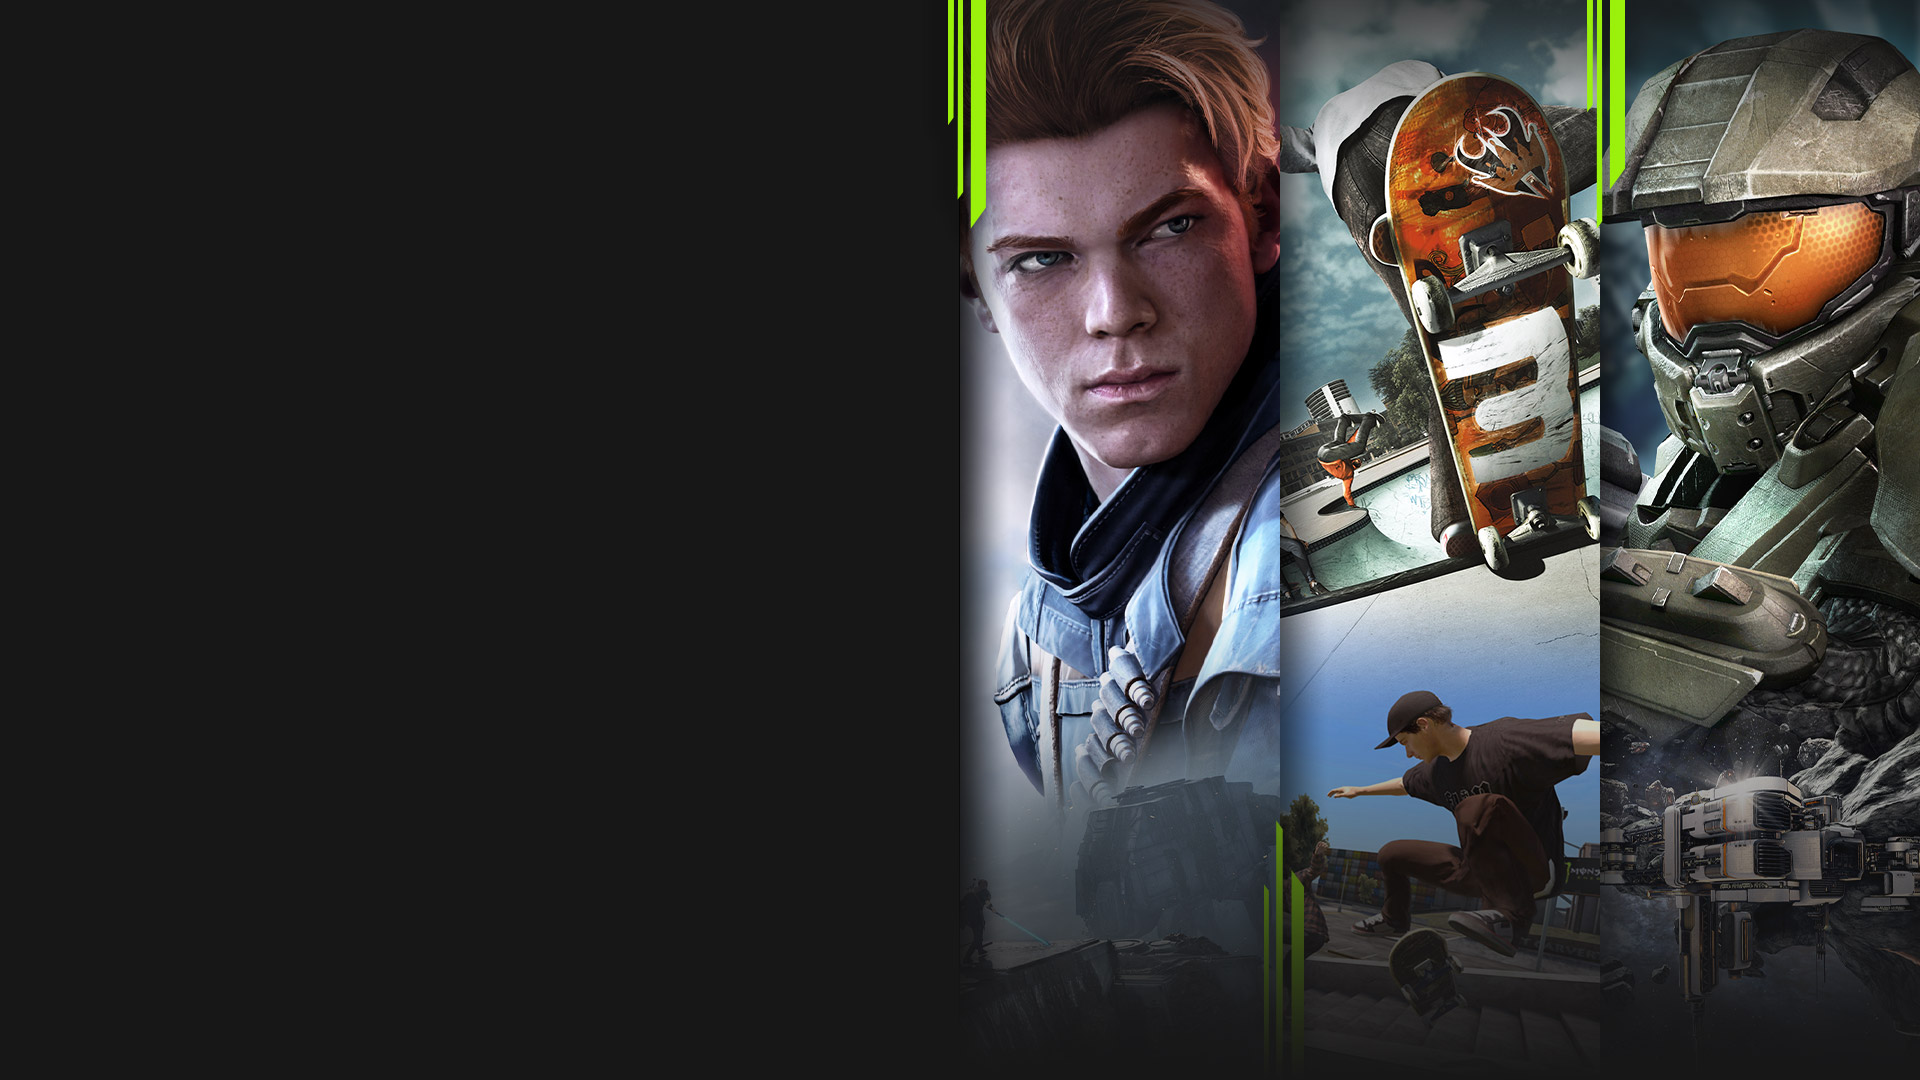 Game art from multiple games available with Xbox Game Pass including Star Wars Jedi: Fallen Order, Skate 3 and Halo 4.